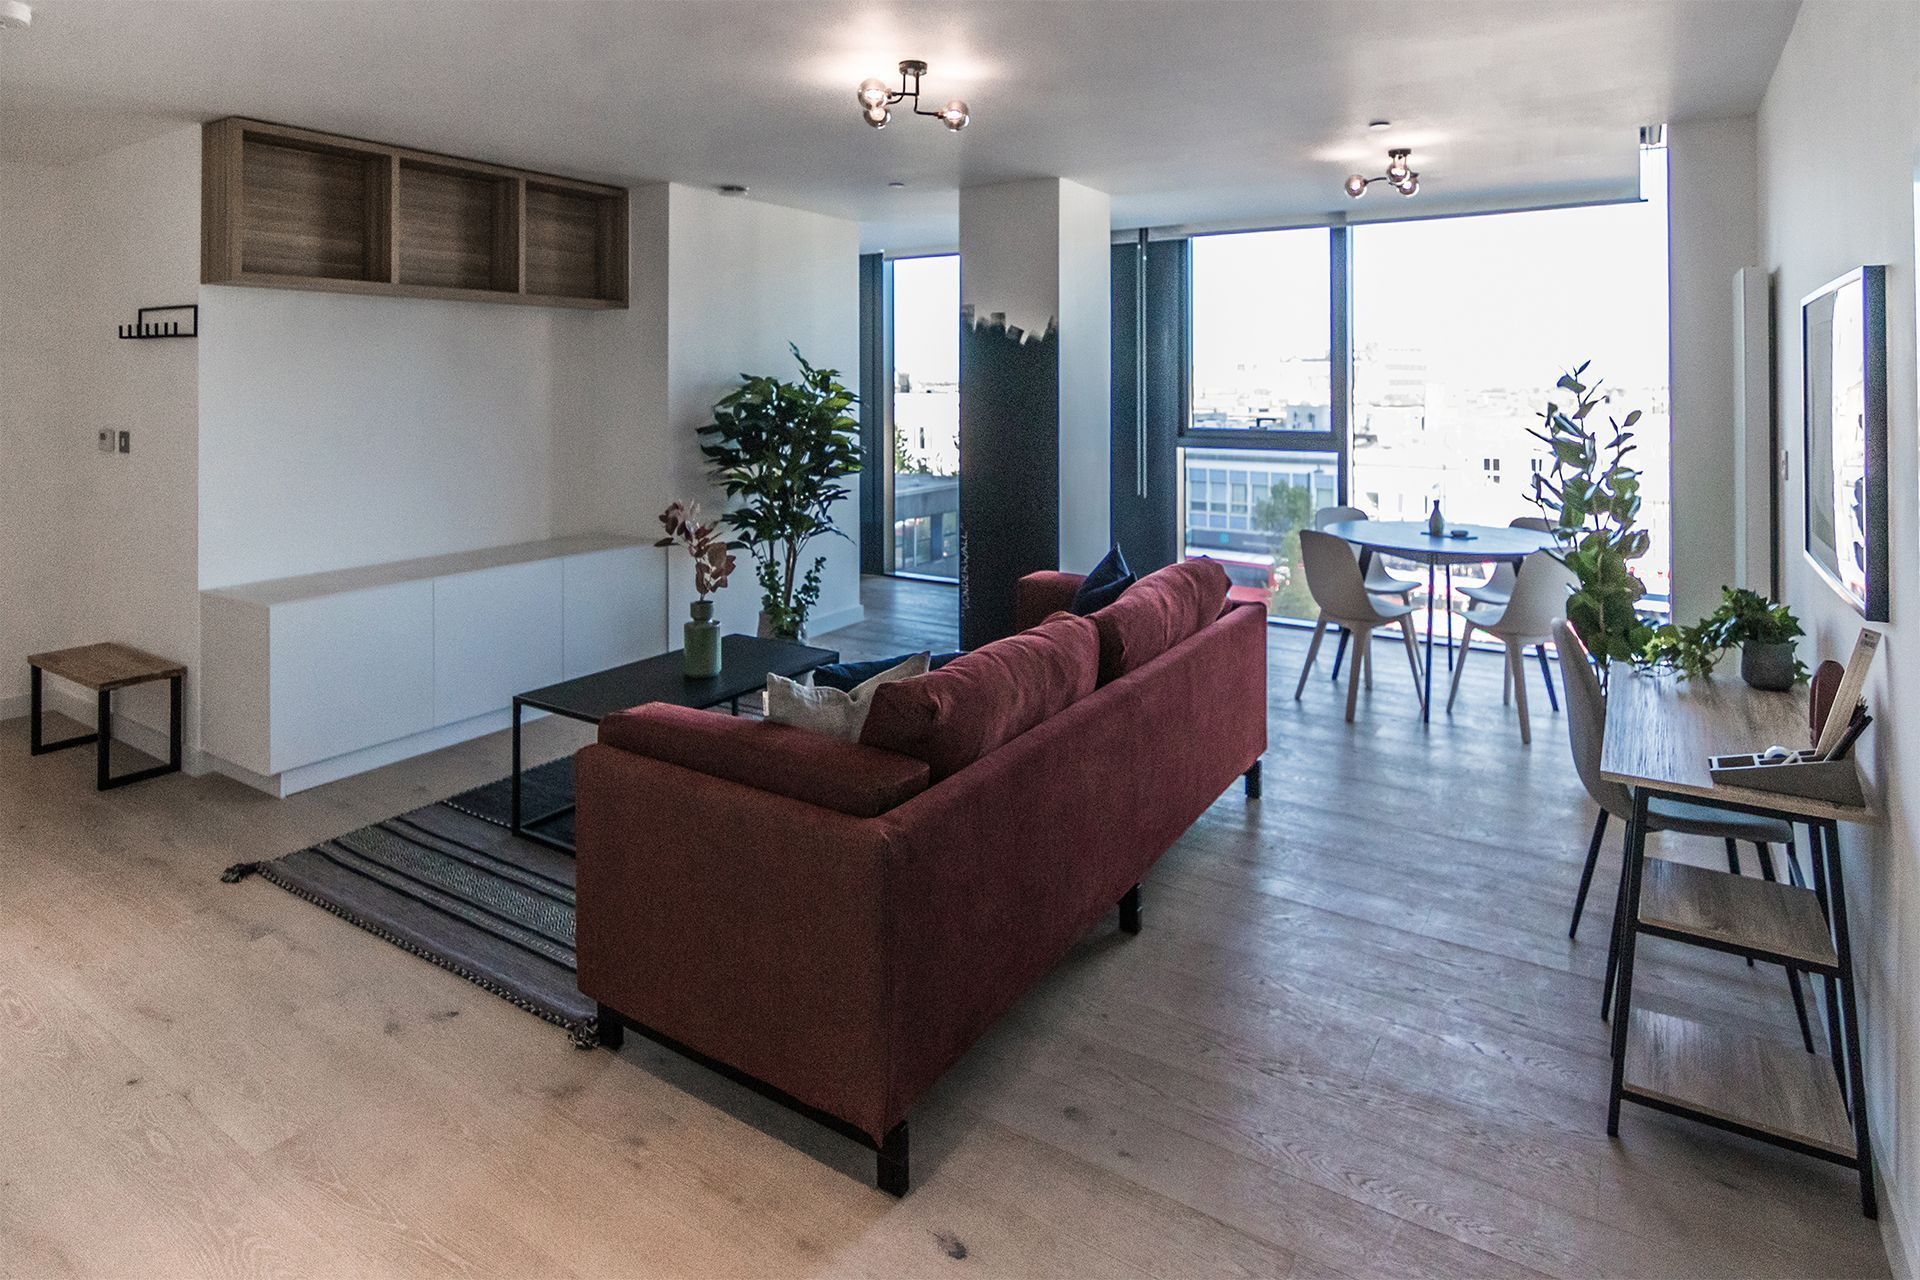 1 Bedroom apartment to rent in London HIL-HH-0400